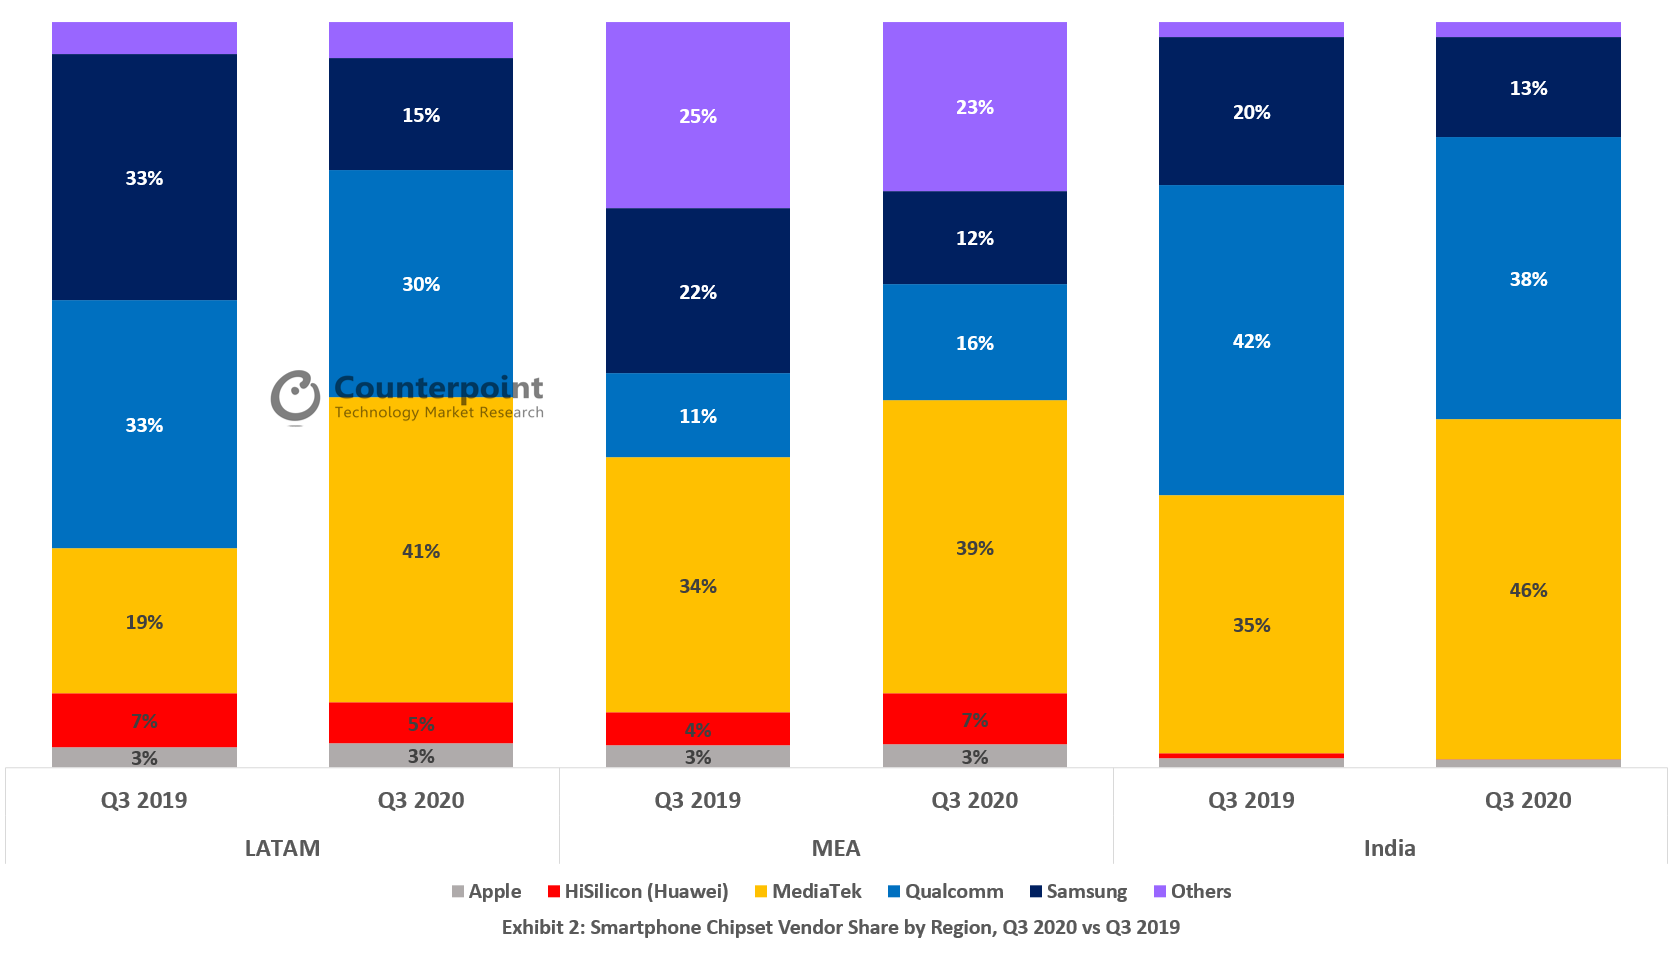 Counterpoint - Smartphone Chipset Vendor Share by Region, Q3 2020 vs Q3 2019